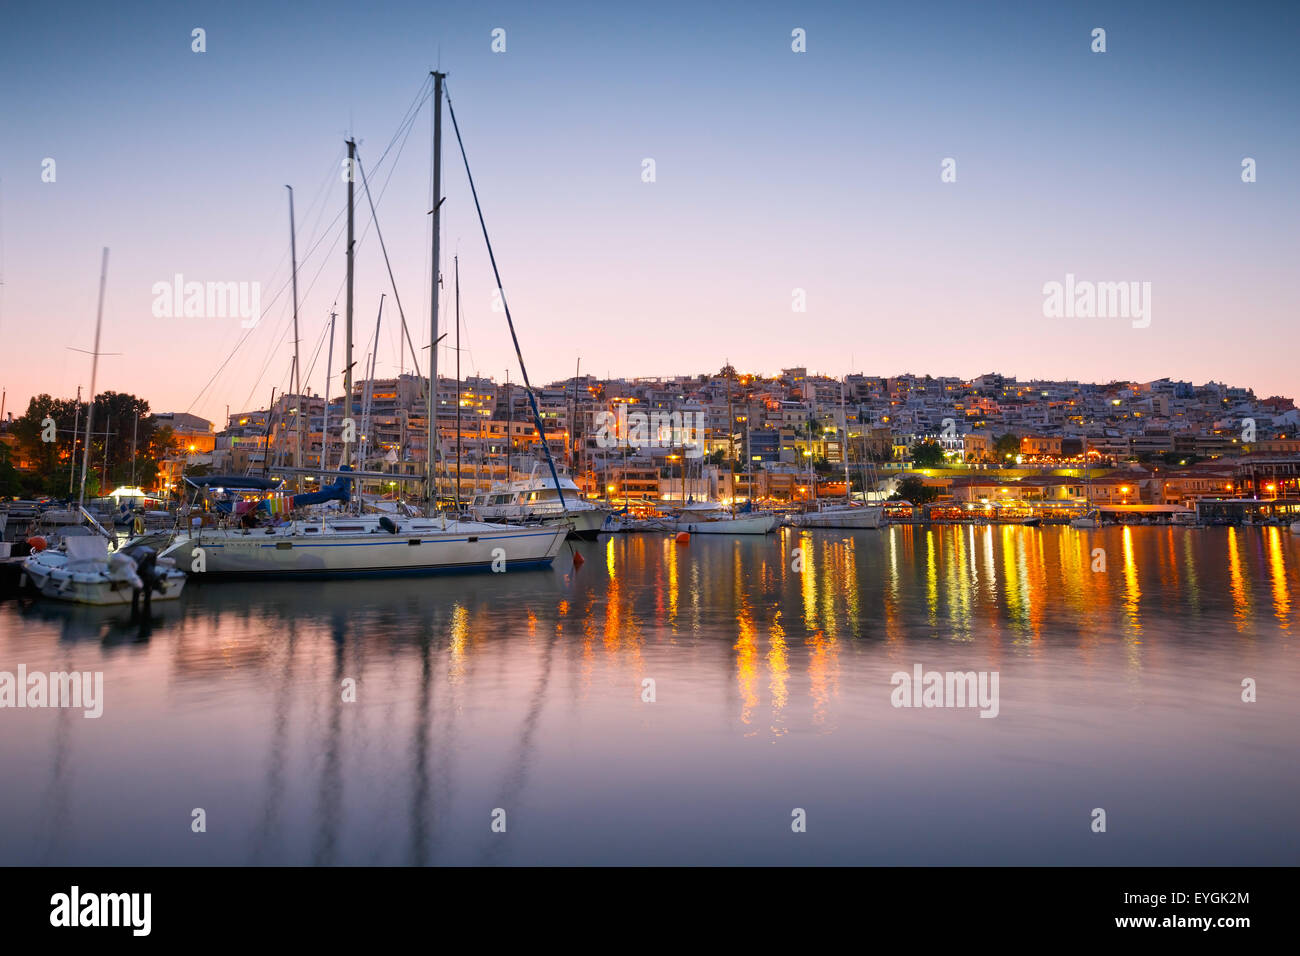 Sail boats at the yacht club in Mikrolimano marina in Athens, Greece - Stock Image